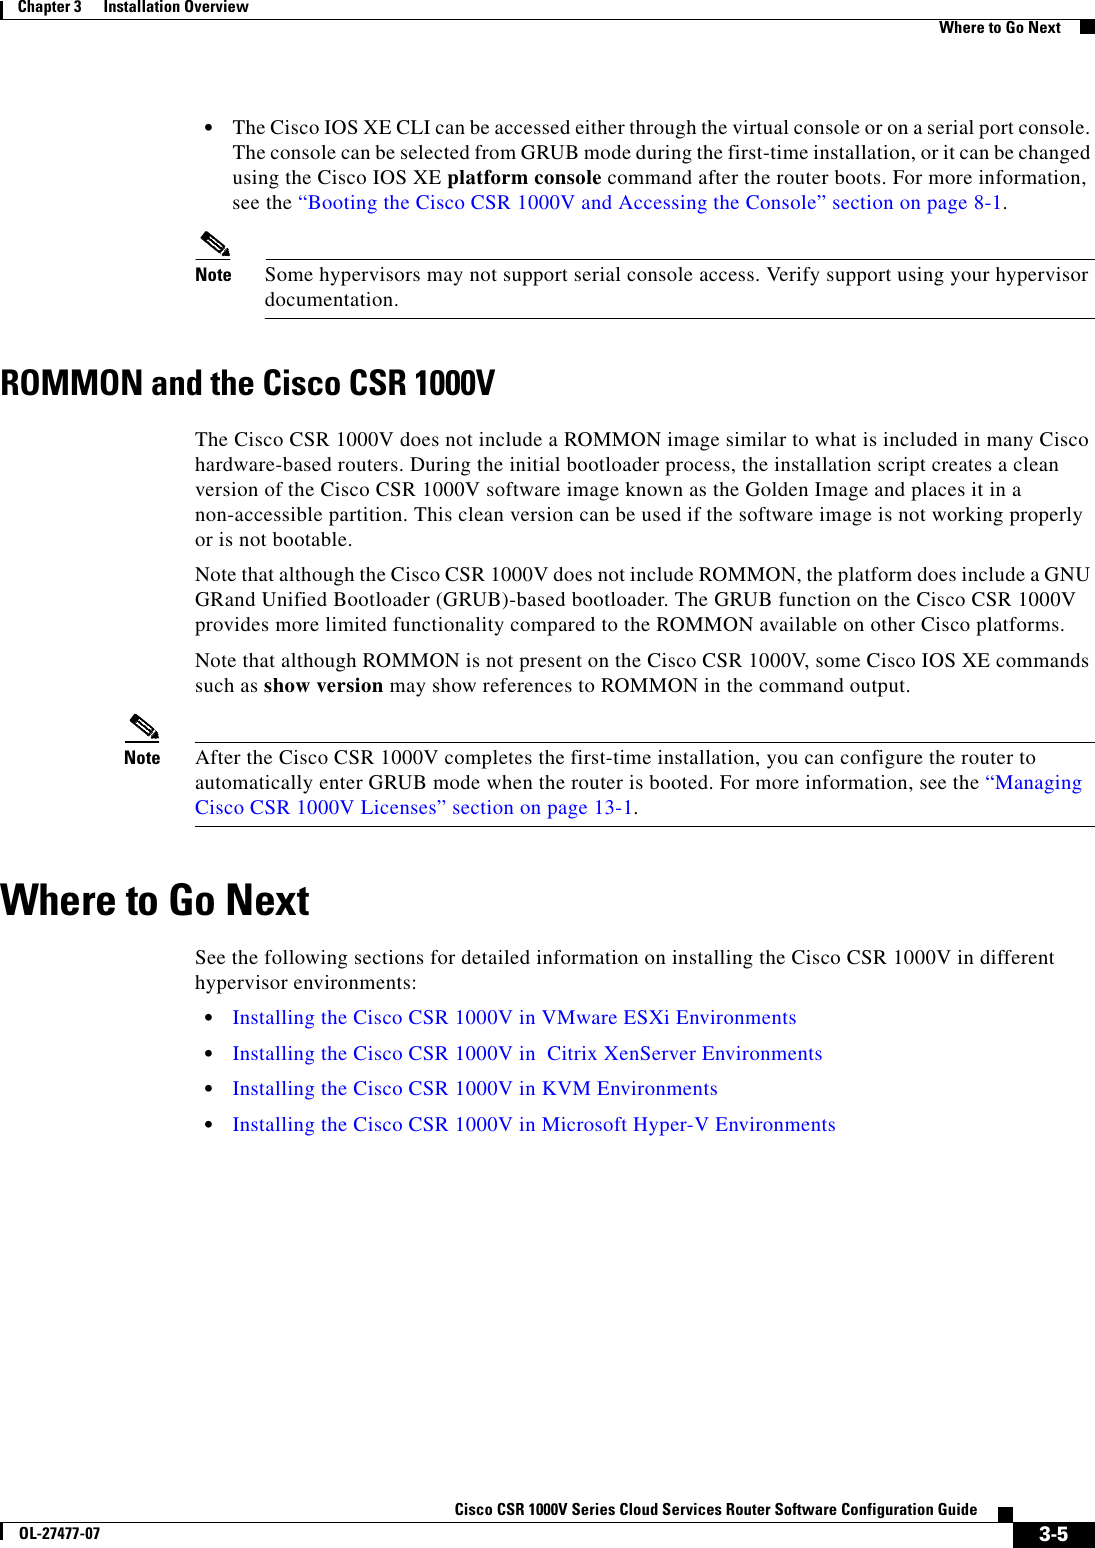 Cisco Systems Csr 1000V Users Manual Series Cloud Services Router